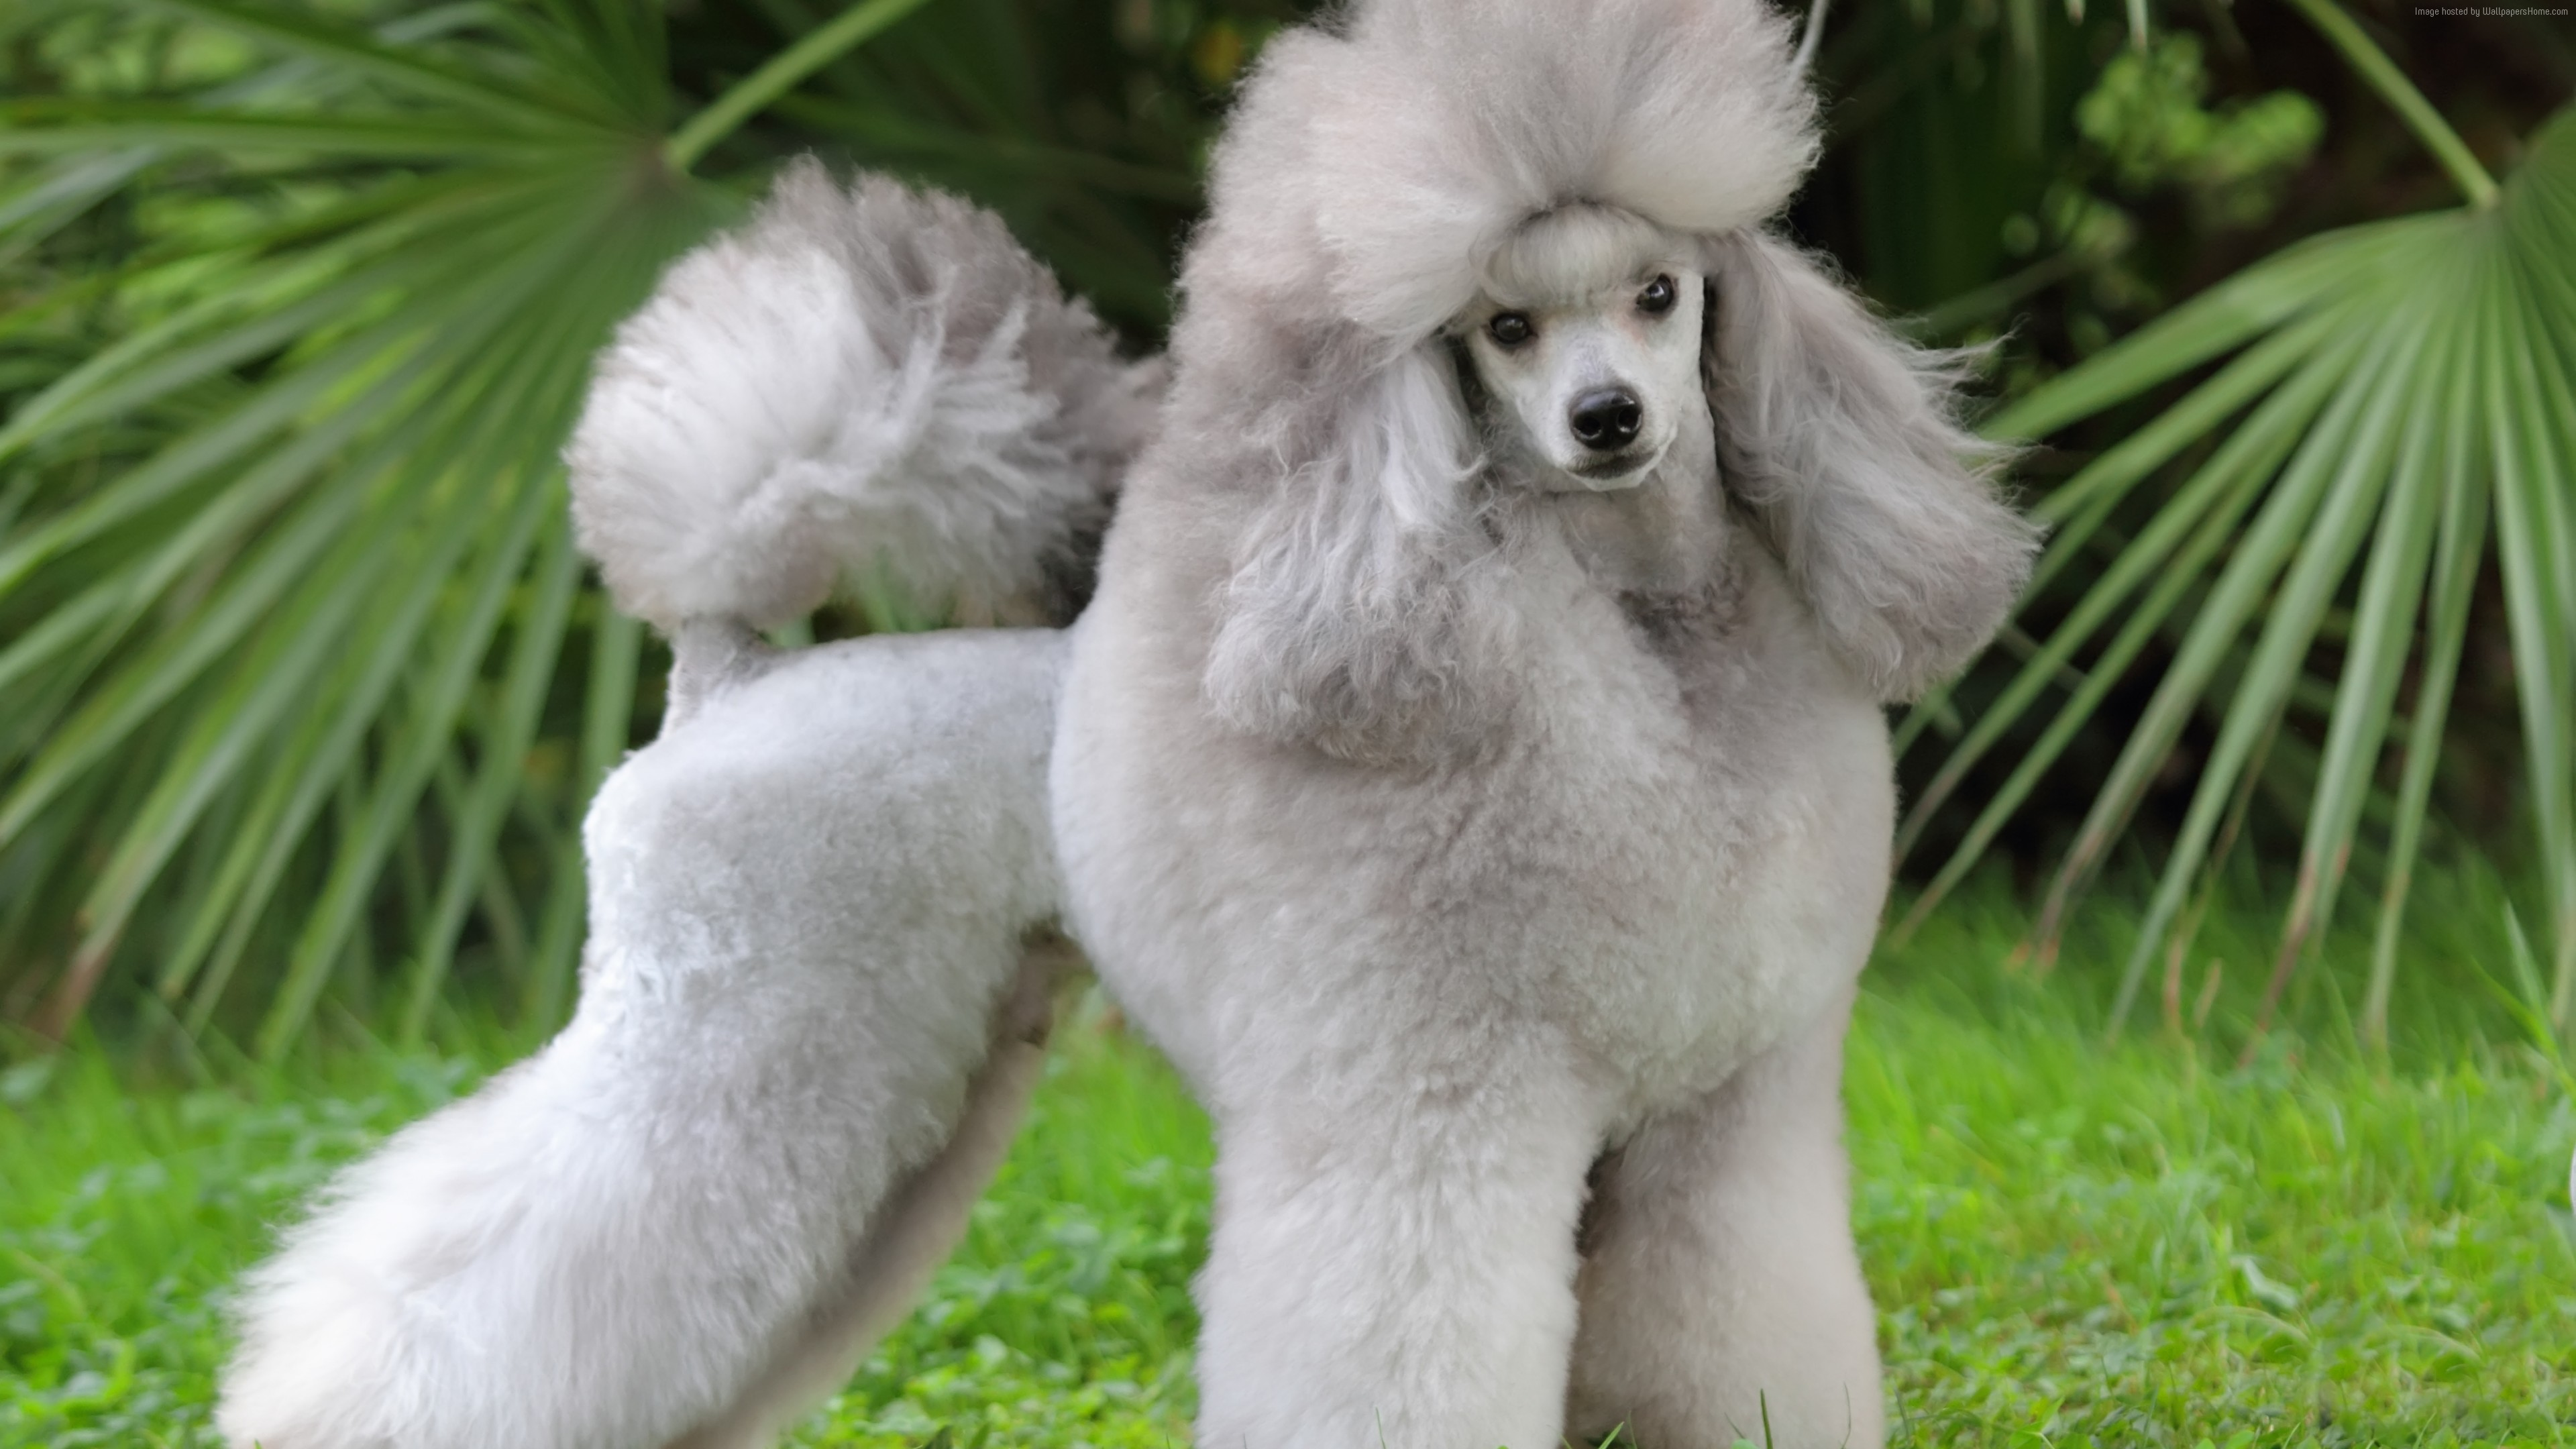 Wallpaper Poodle, grey, grass, cute animals, Animals